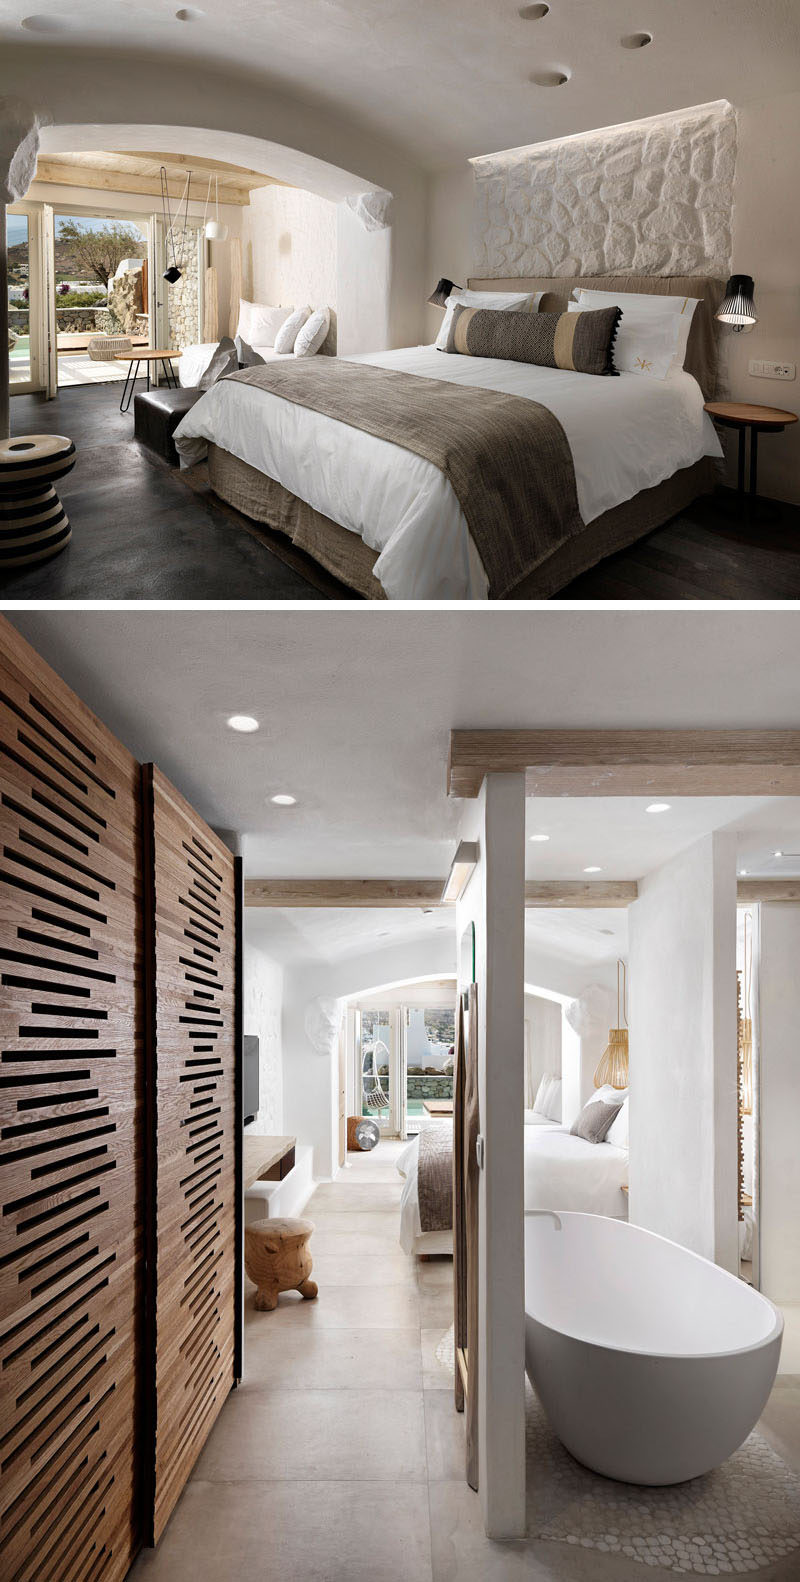 This contemporary hotel room has natural stone and aged wood featured throughout.